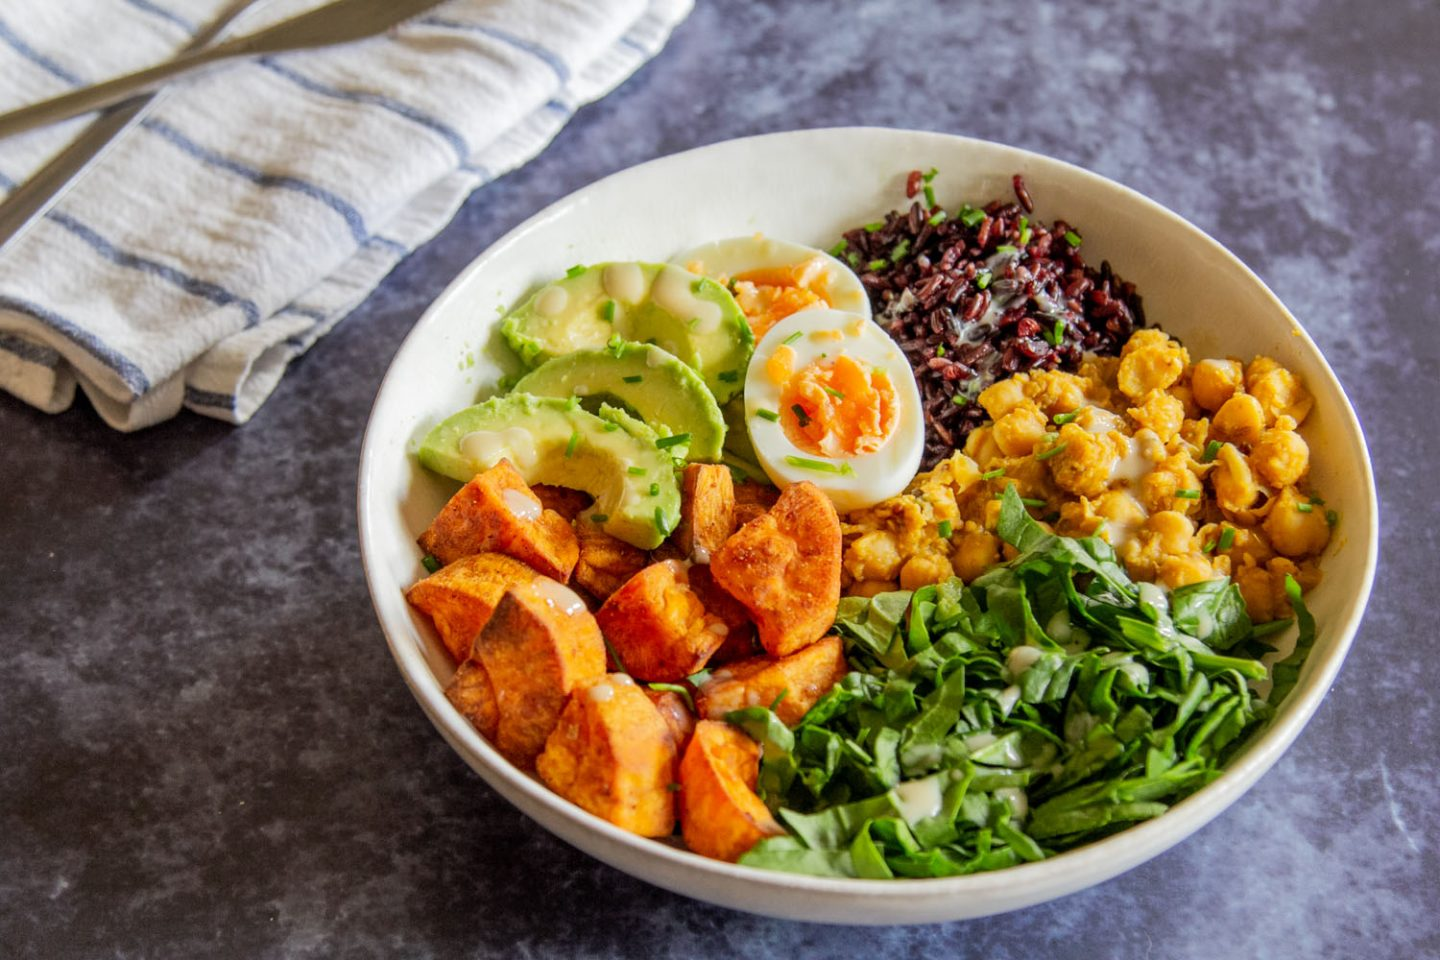 Bowl of rice, chickpeas, spinach, sweet potato, avocado and egg